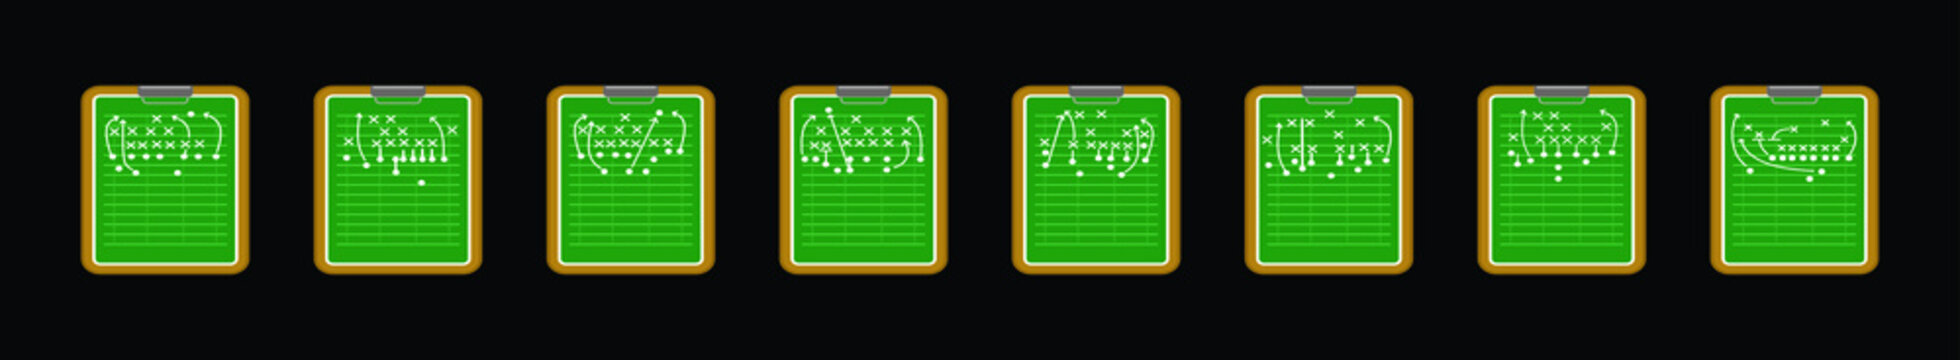 set of football playbook cartoon icon design template with various models. vector illustration isolated on black background